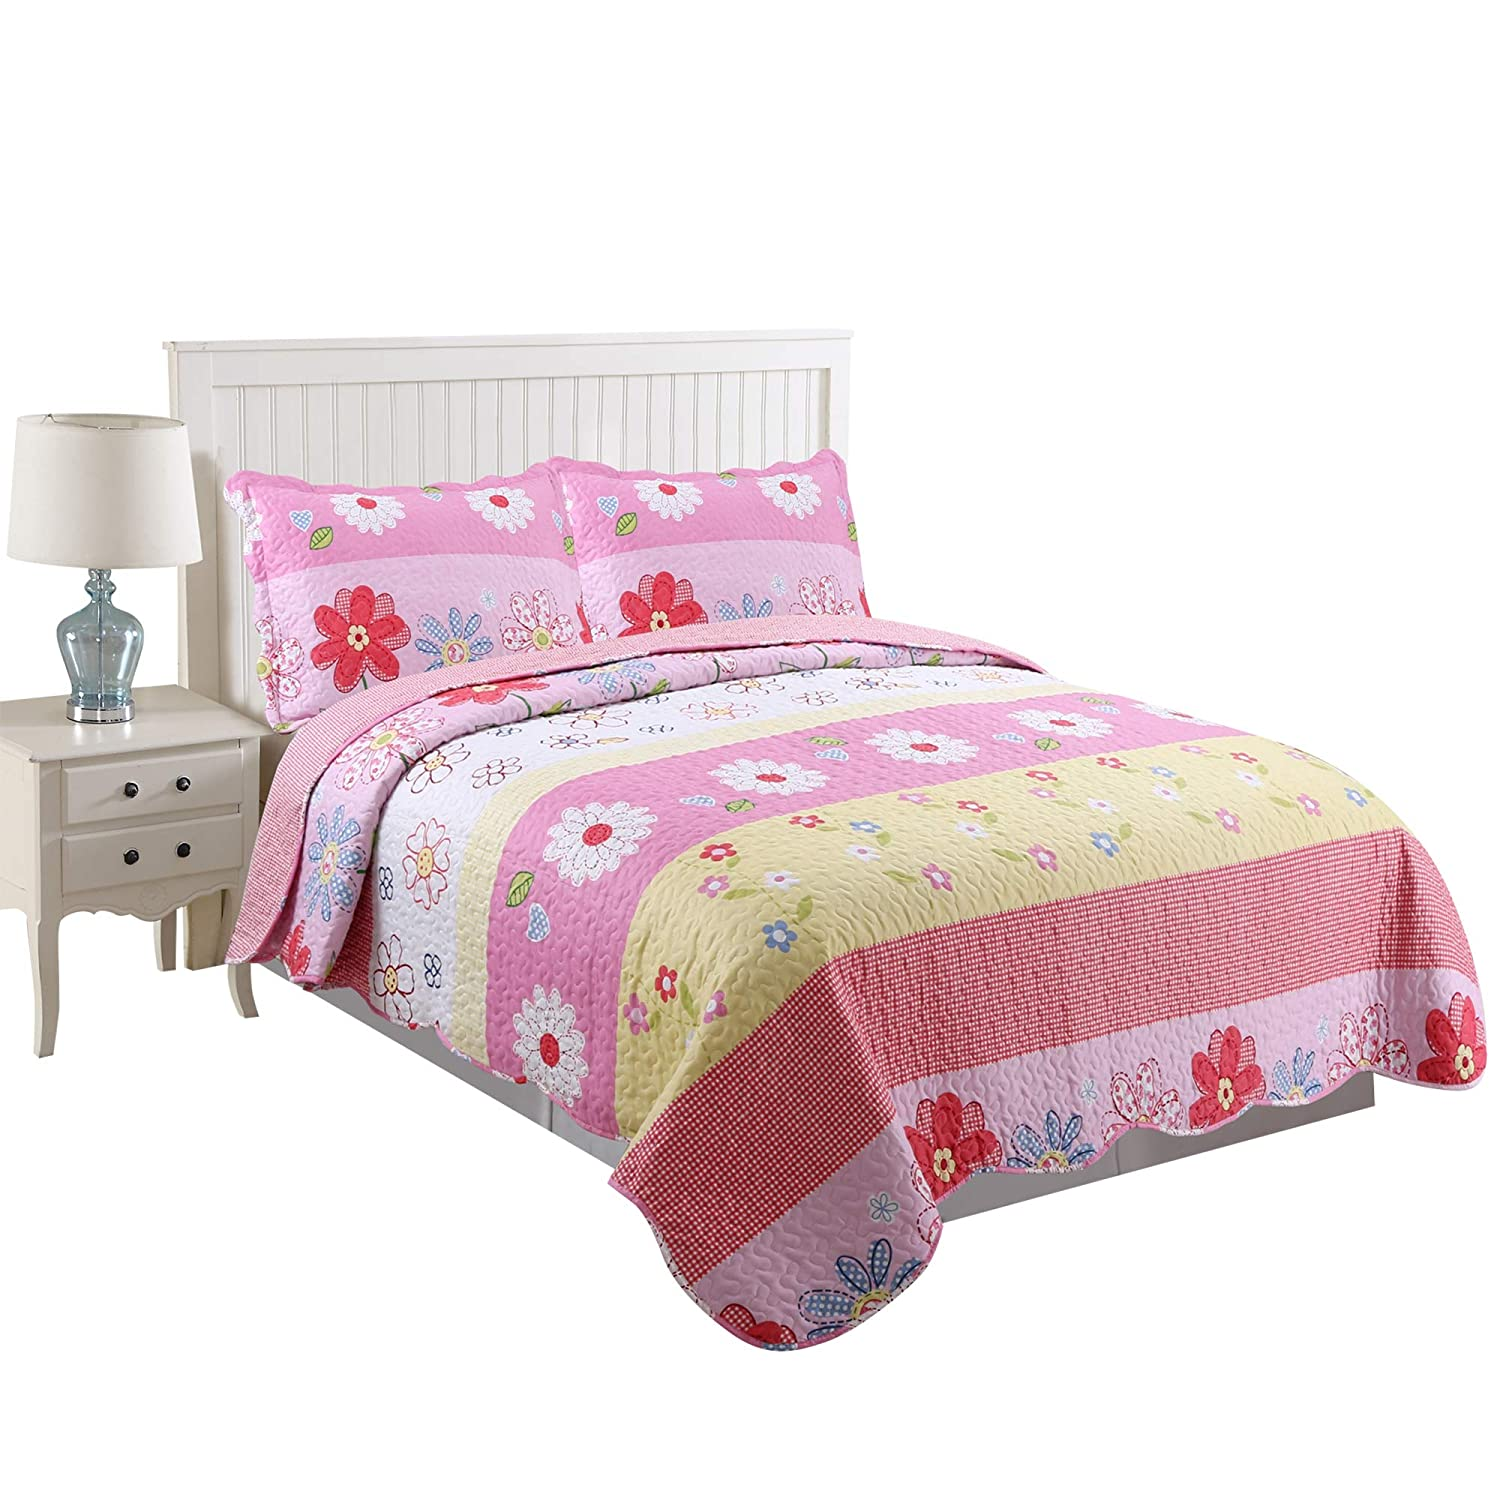 MarCielo 2 Piece Kids Bedspread Quilts Set Throw Blanket for Teens Girls Bed Printed Bedding Coverlet, Full Size, Pink Stripe (Full) ocean home fashion ca-full pink stripe